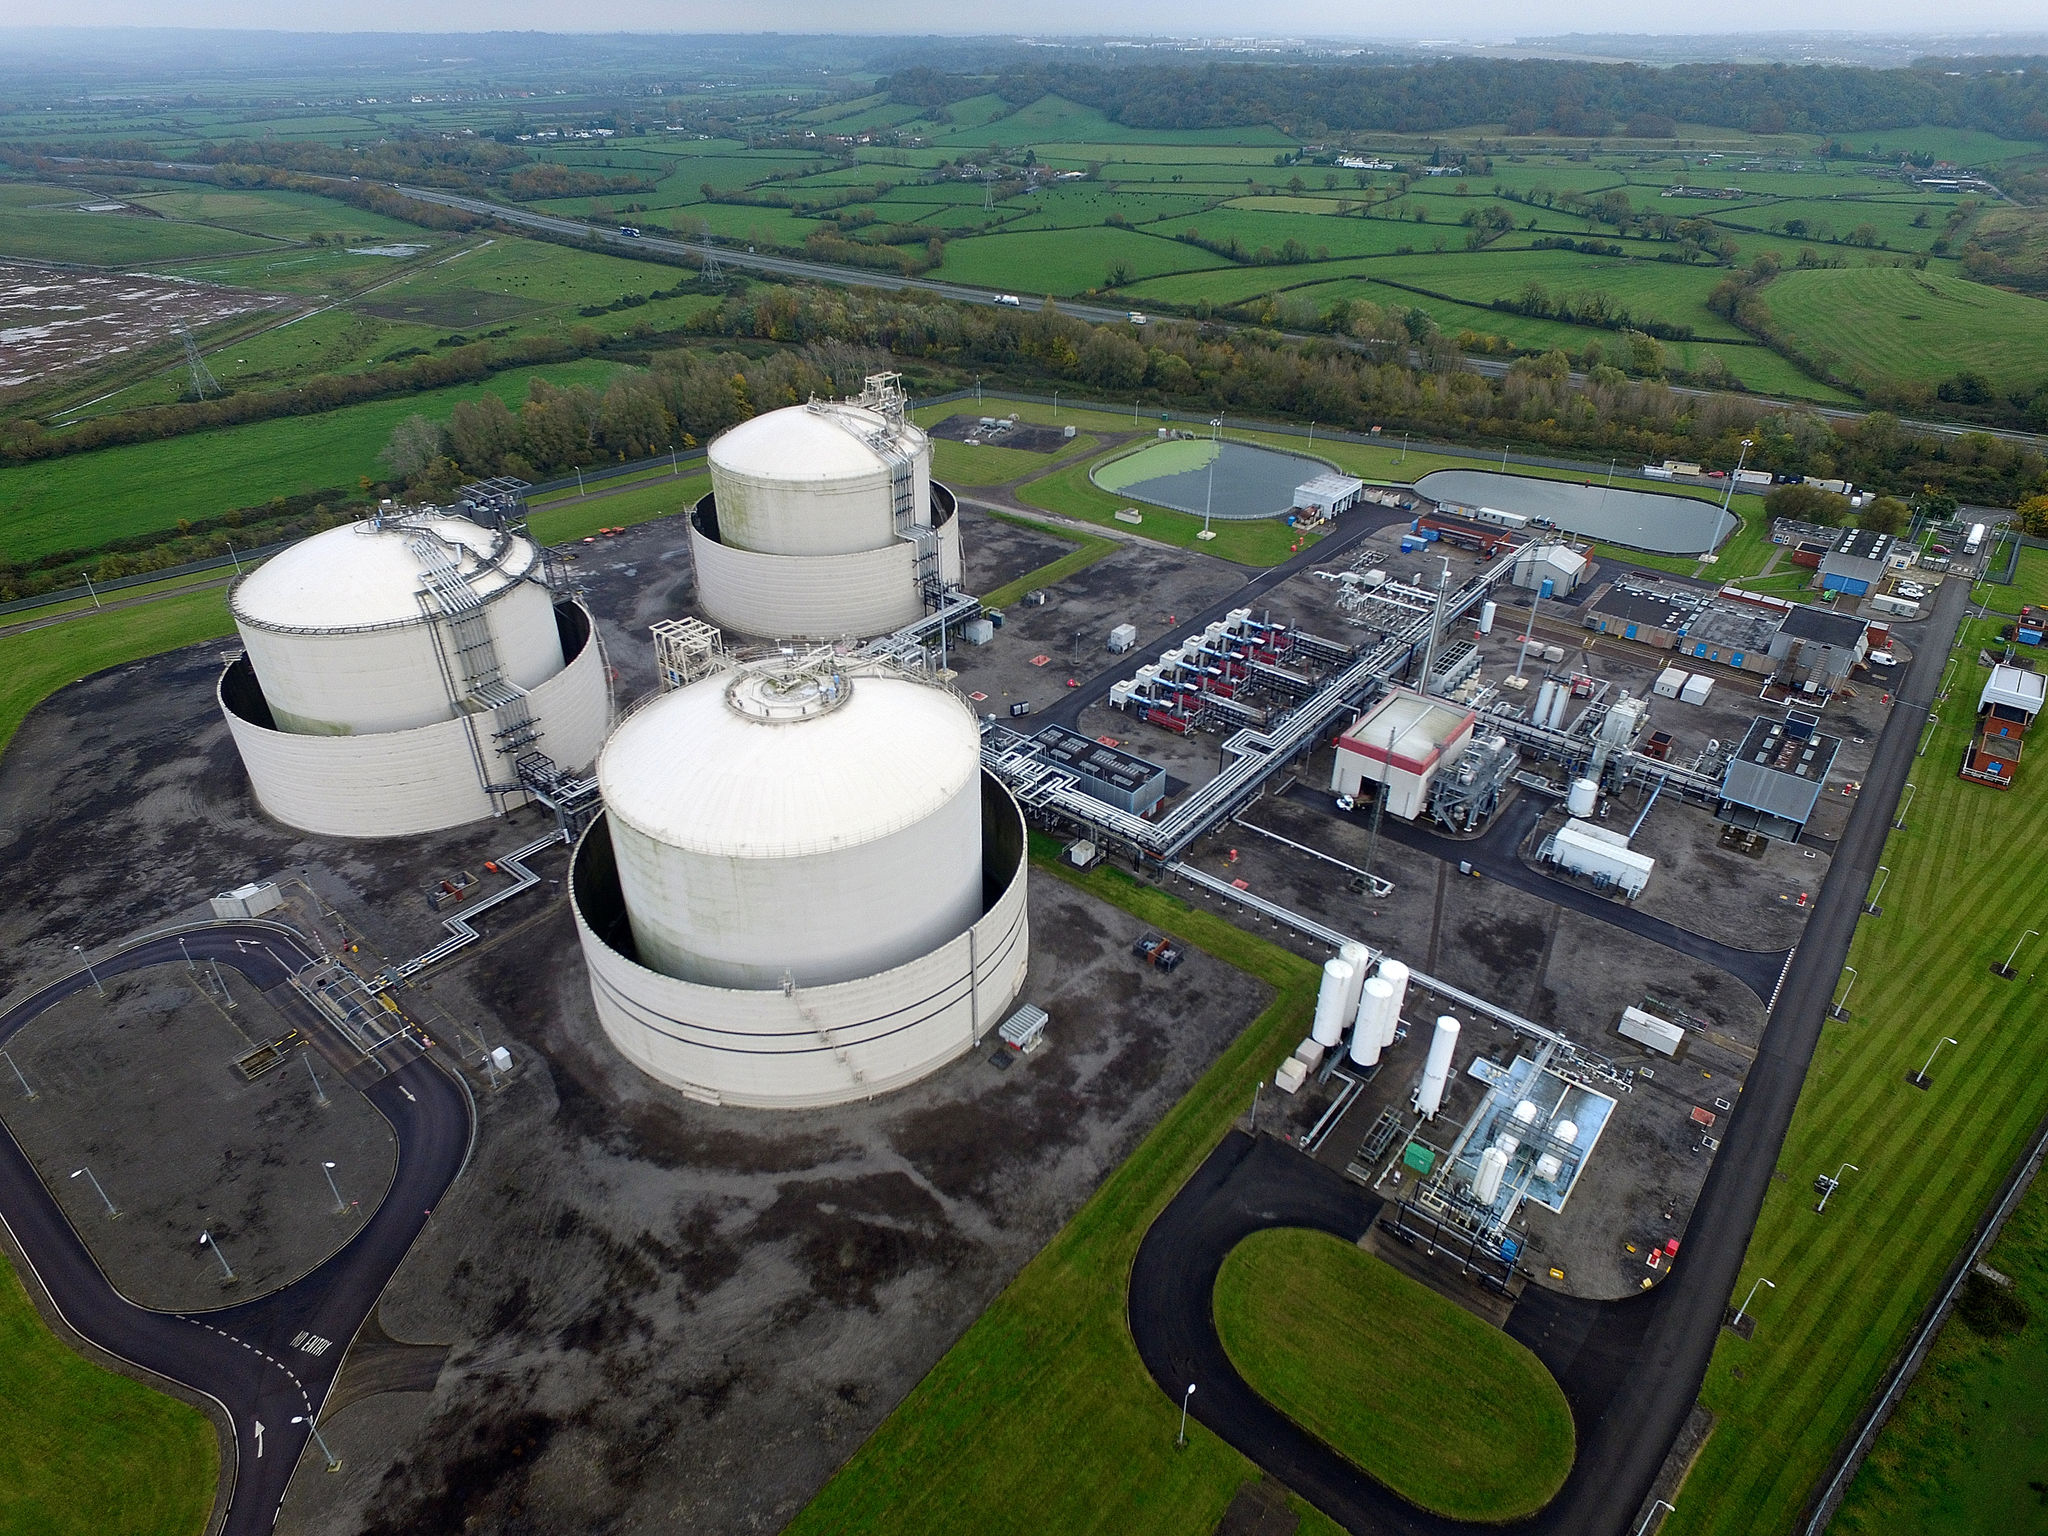 Flogas Britain Granted Planning Permission for LPG Storage Facility image 1